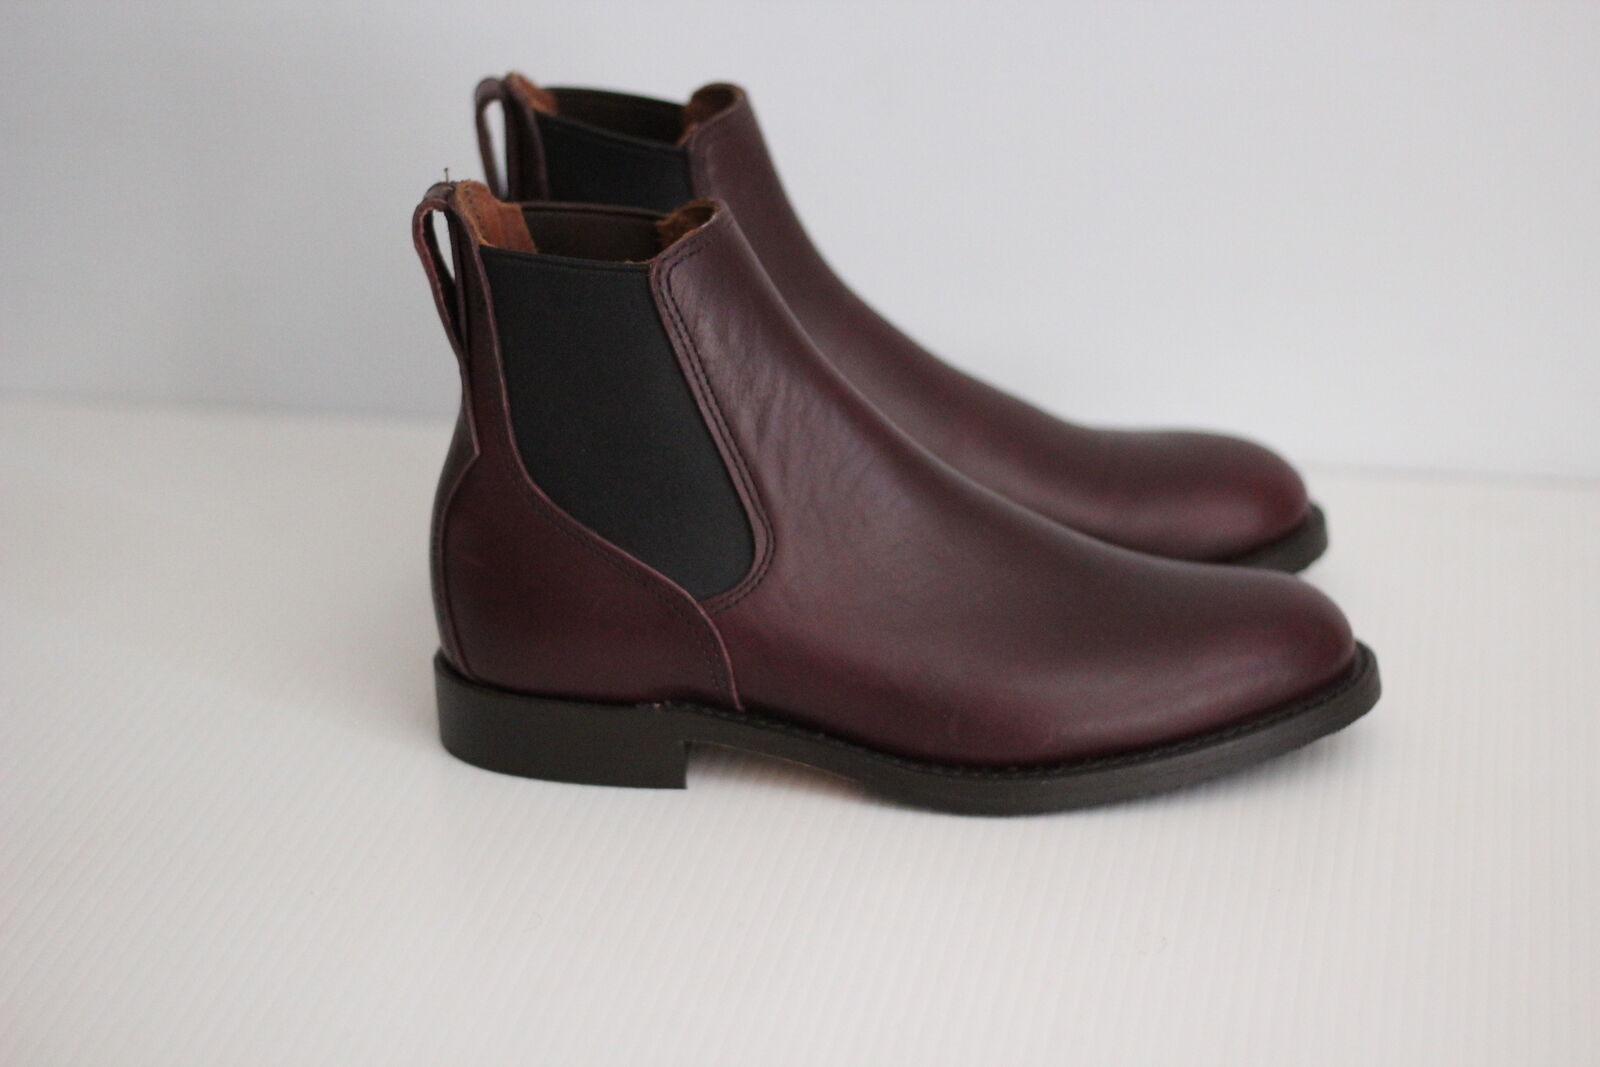 NEW Red Wing 9077 6  Chelsea Boot - Black Cherry   Burgundy - 7.5 D  (Y80)